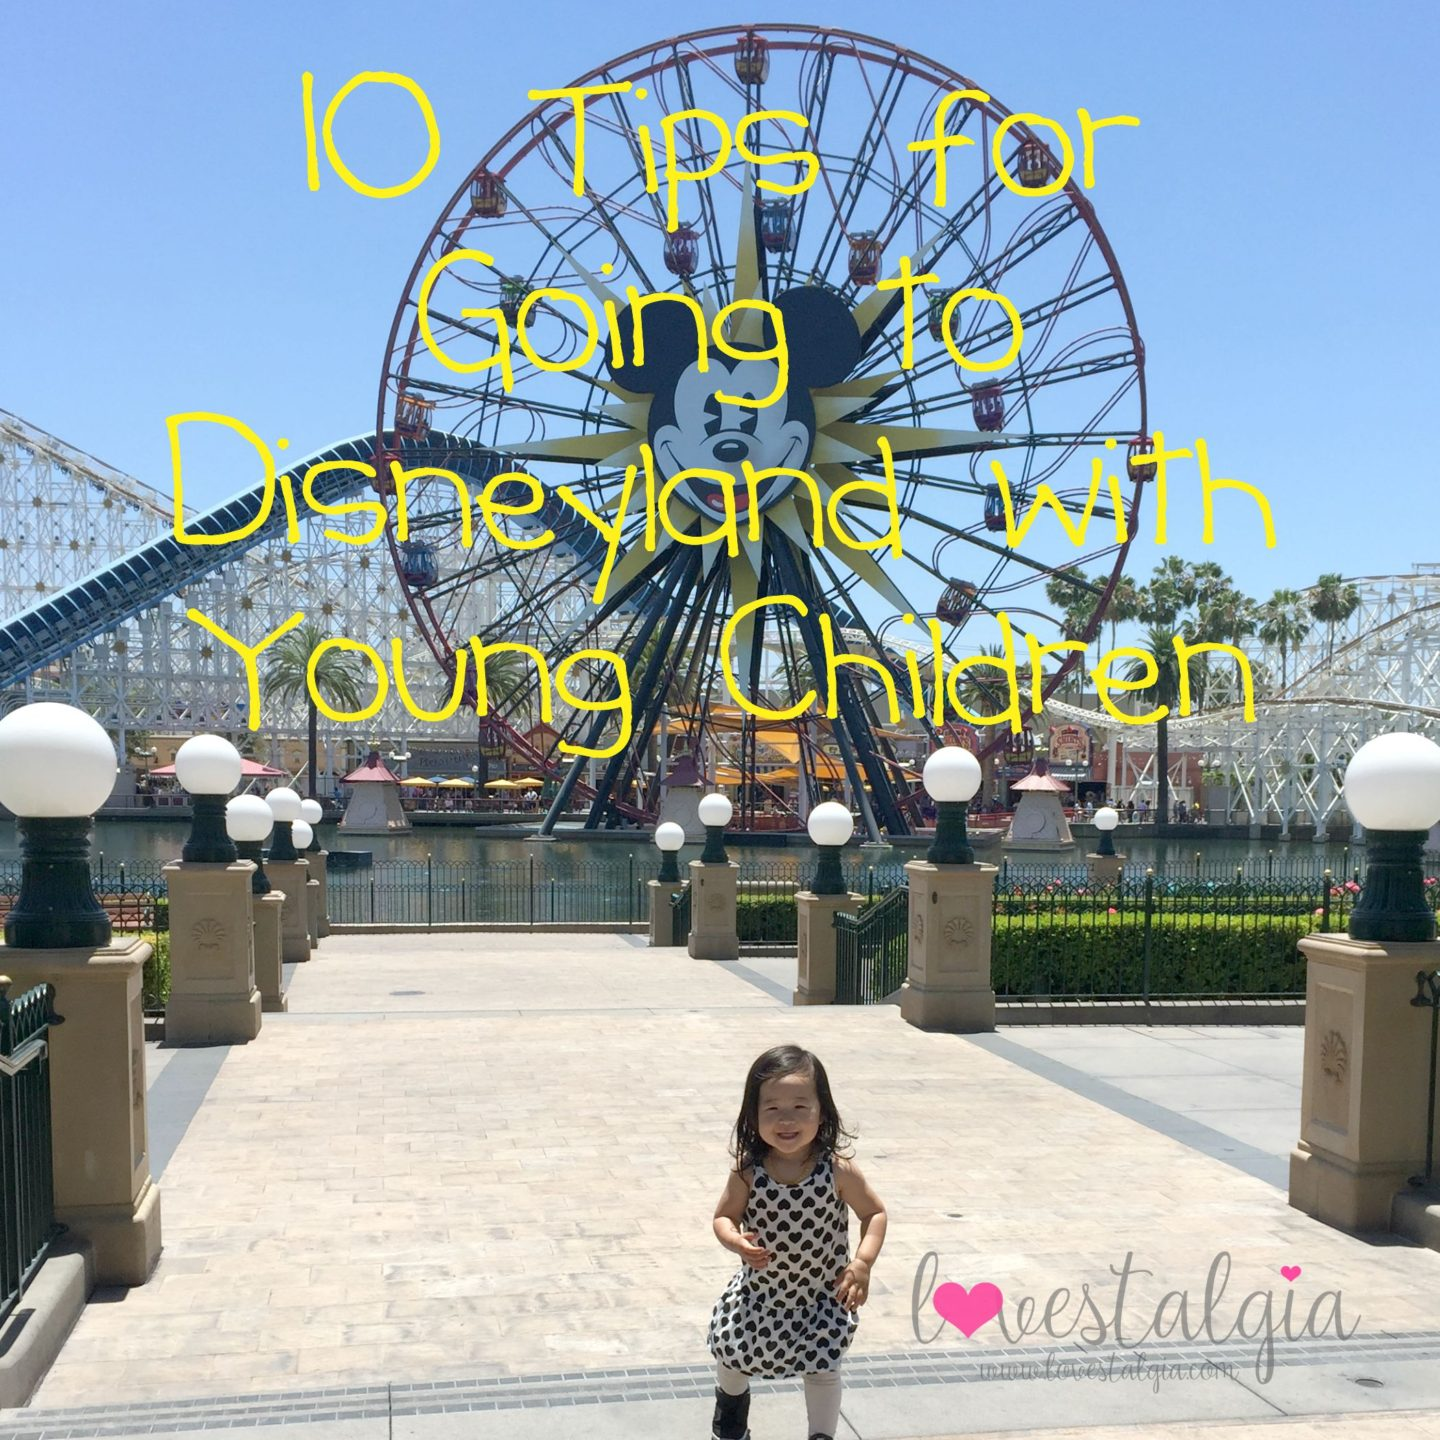 10 Tips for Going to Disneyland with Young Children